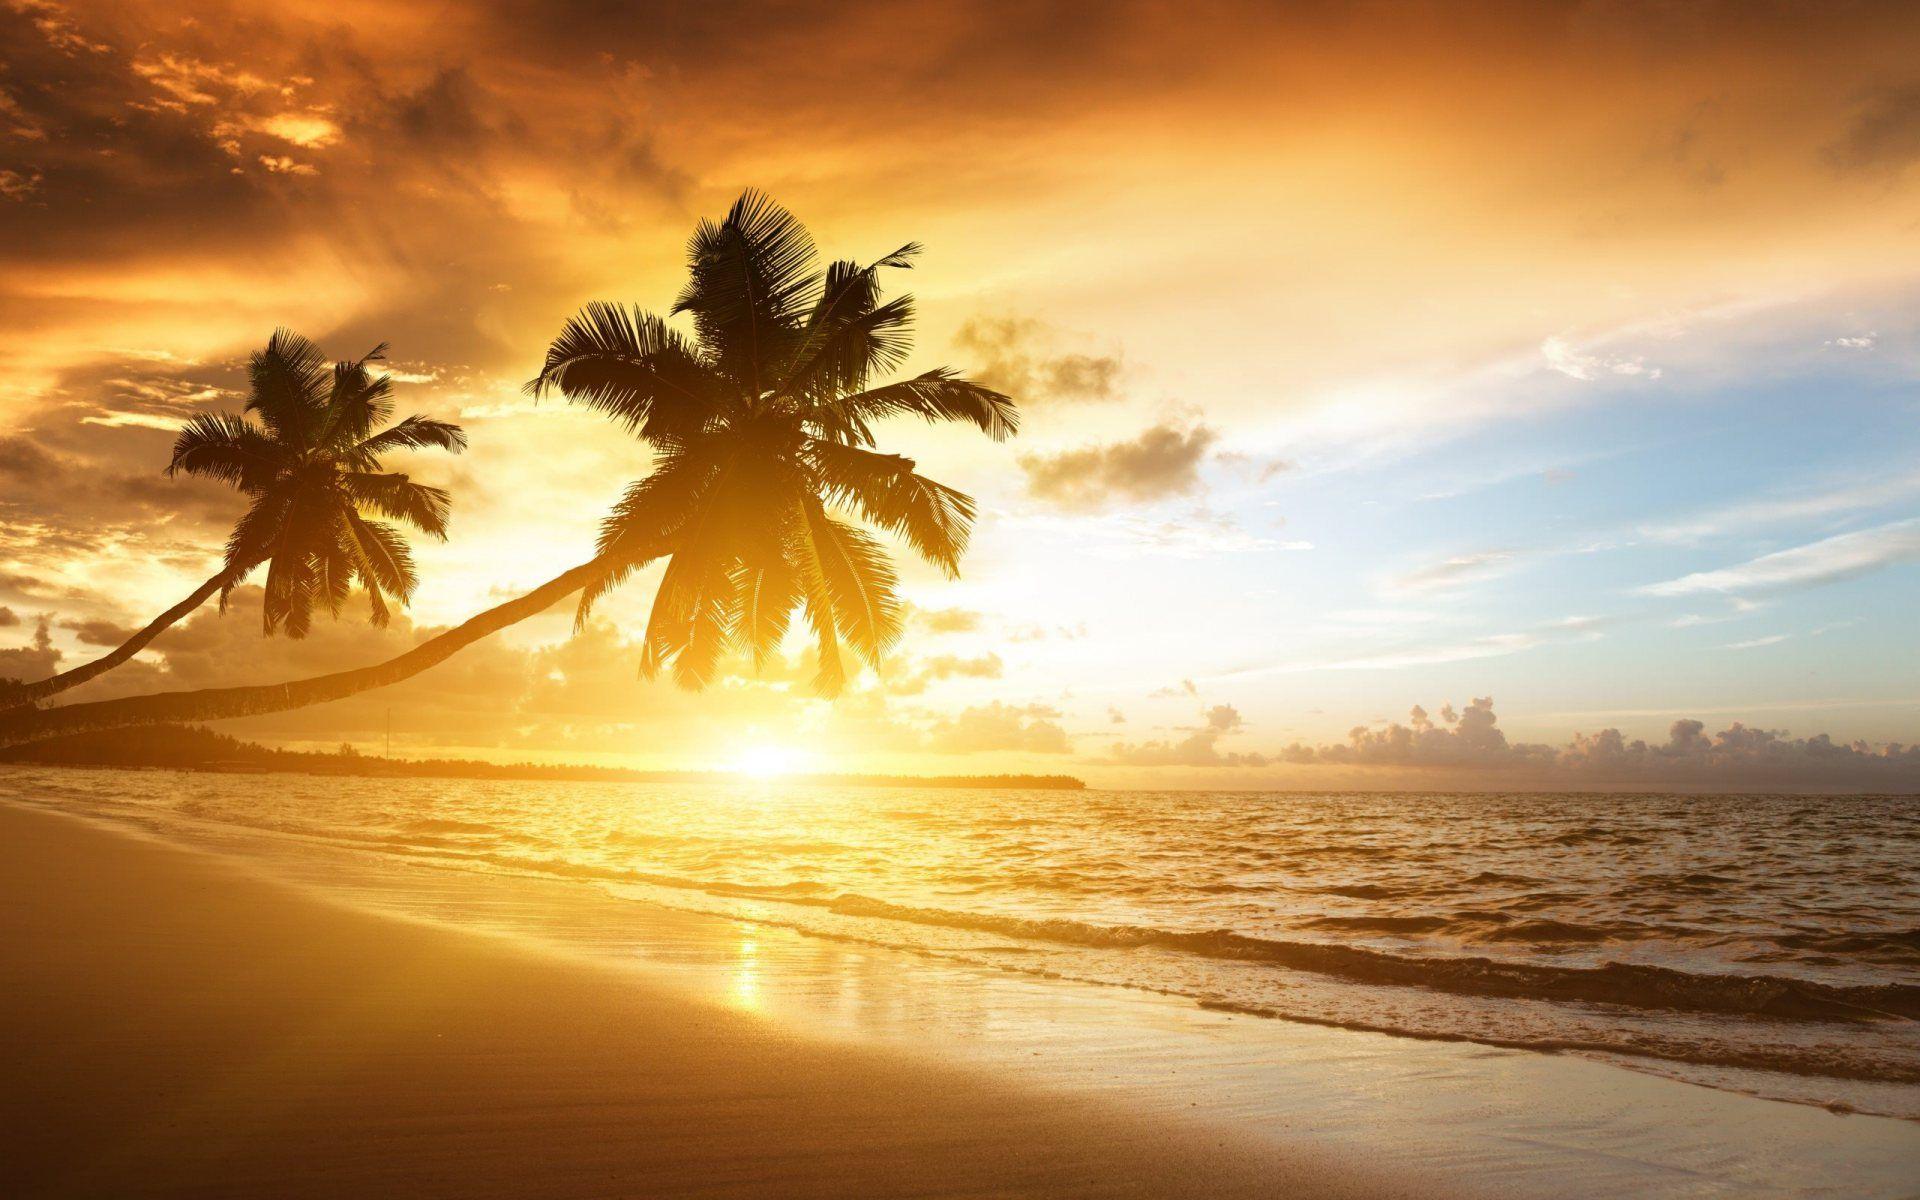 sunset beach hd wallpapers | new wallpapers | beaches | pinterest